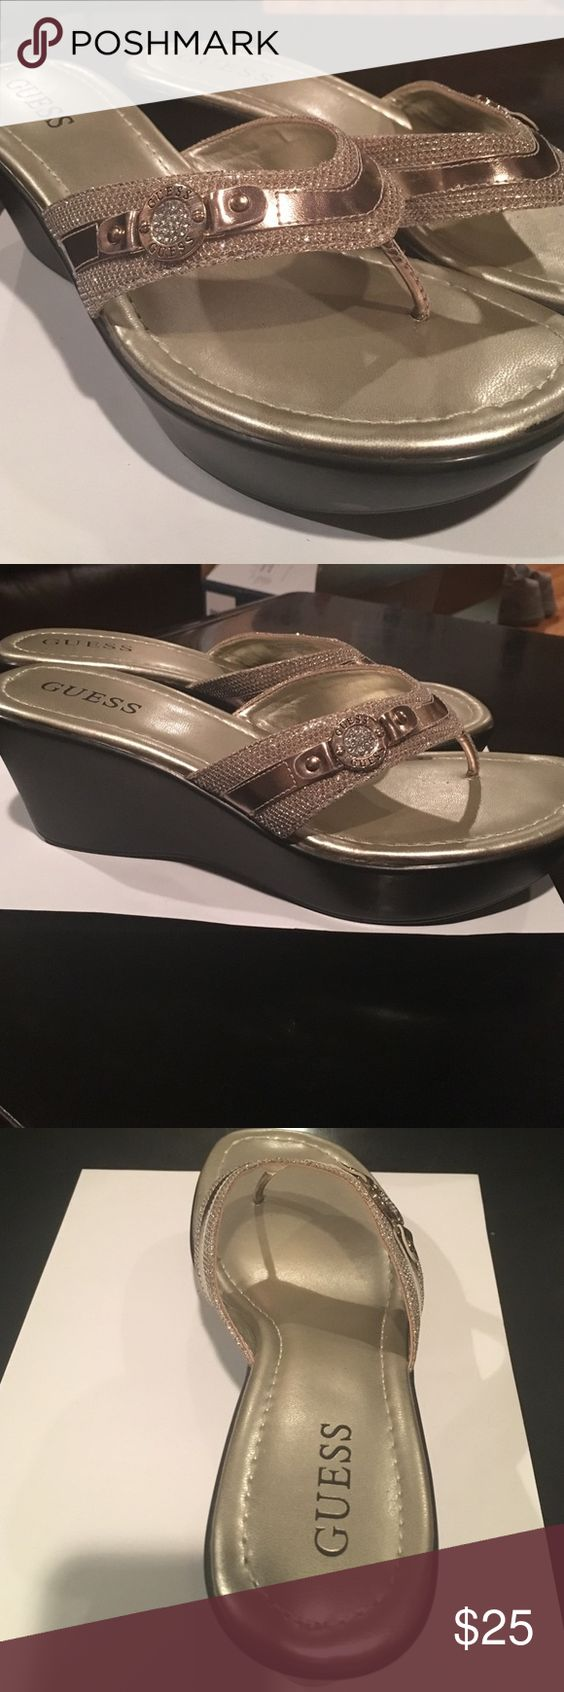 Guess Sparkling Wedged Flip-Flops These shoes are perfect for a glamorous day at the shore! Comfortable 2 inch wedge and a glittery belt-like detail. Guess Shoes Wedges